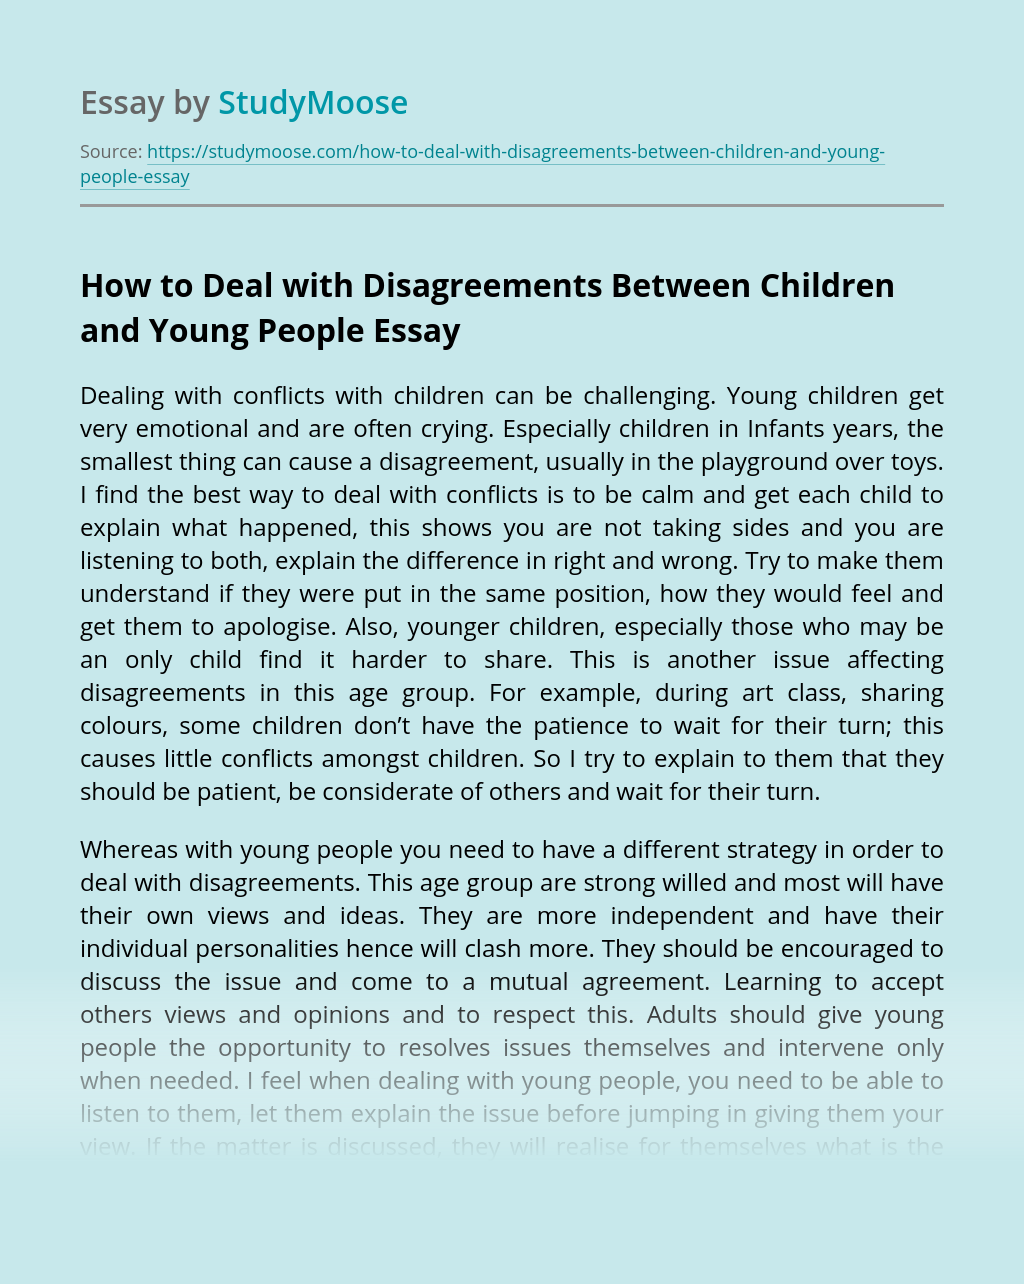 How to Deal with Disagreements Between Children and Young People